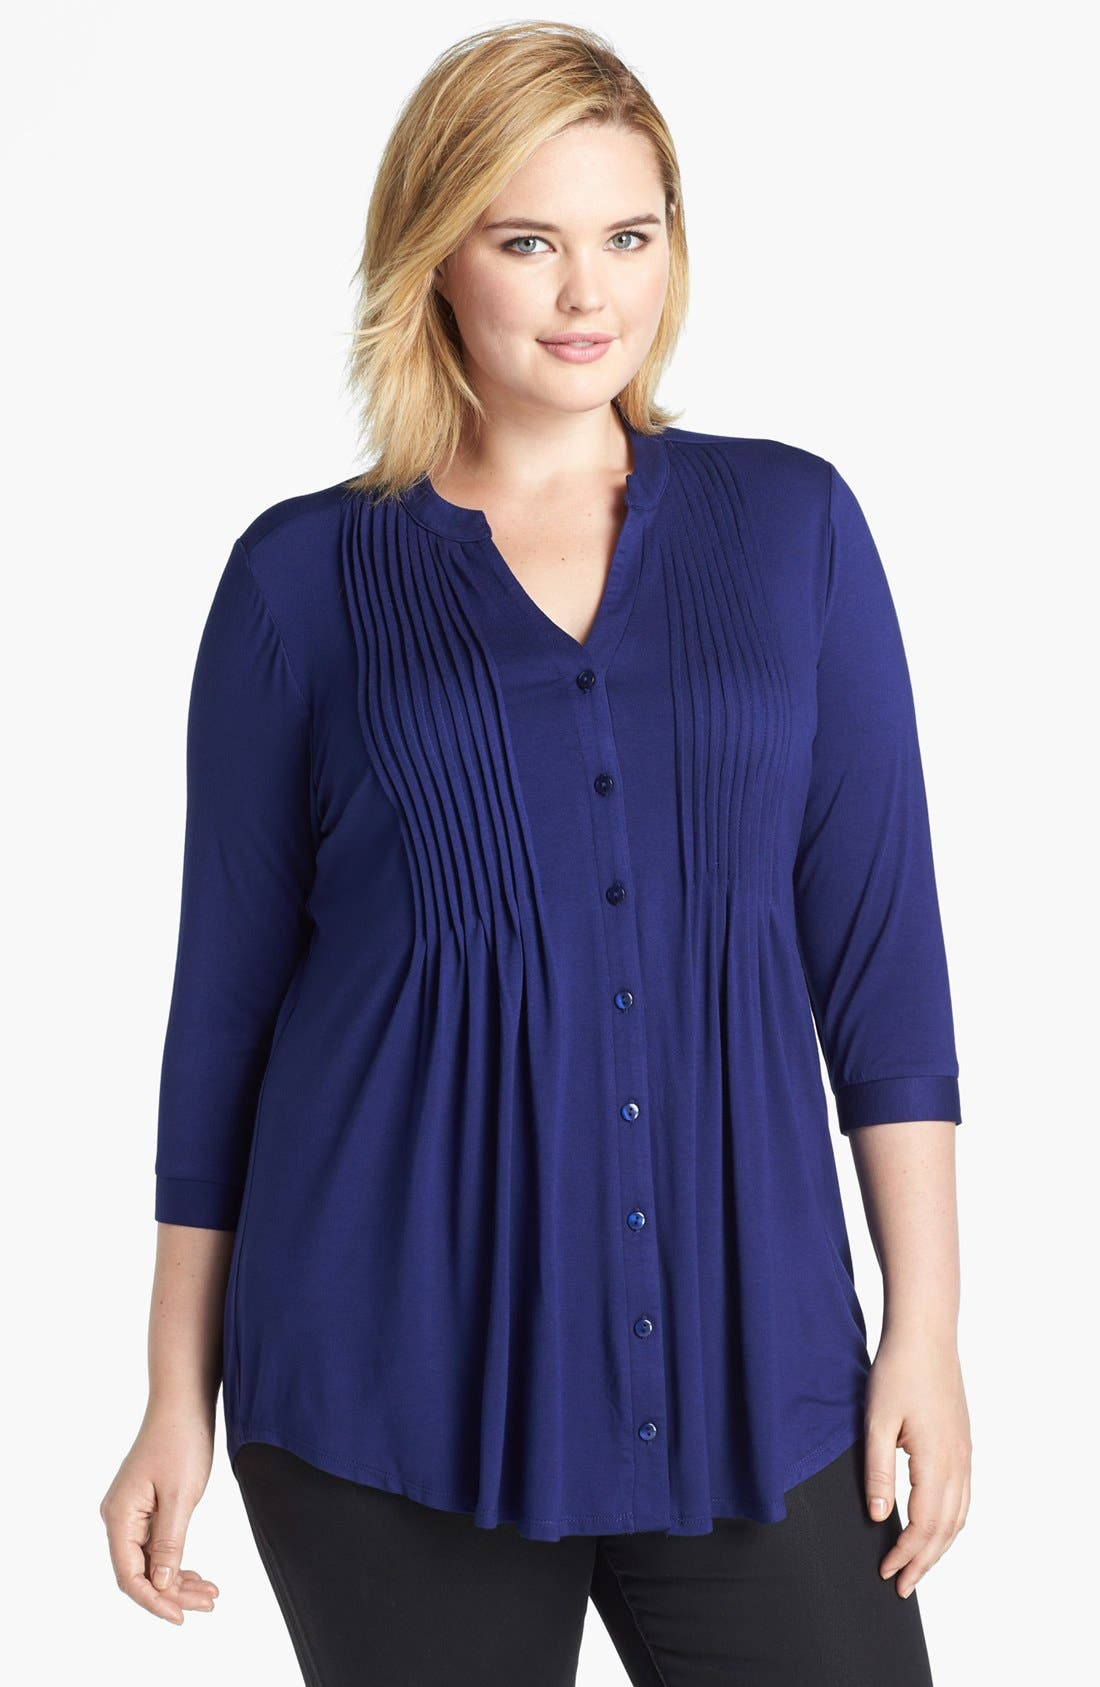 Alternate Image 1 Selected - Evans Pintucked Jersey Shirt (Plus Size)